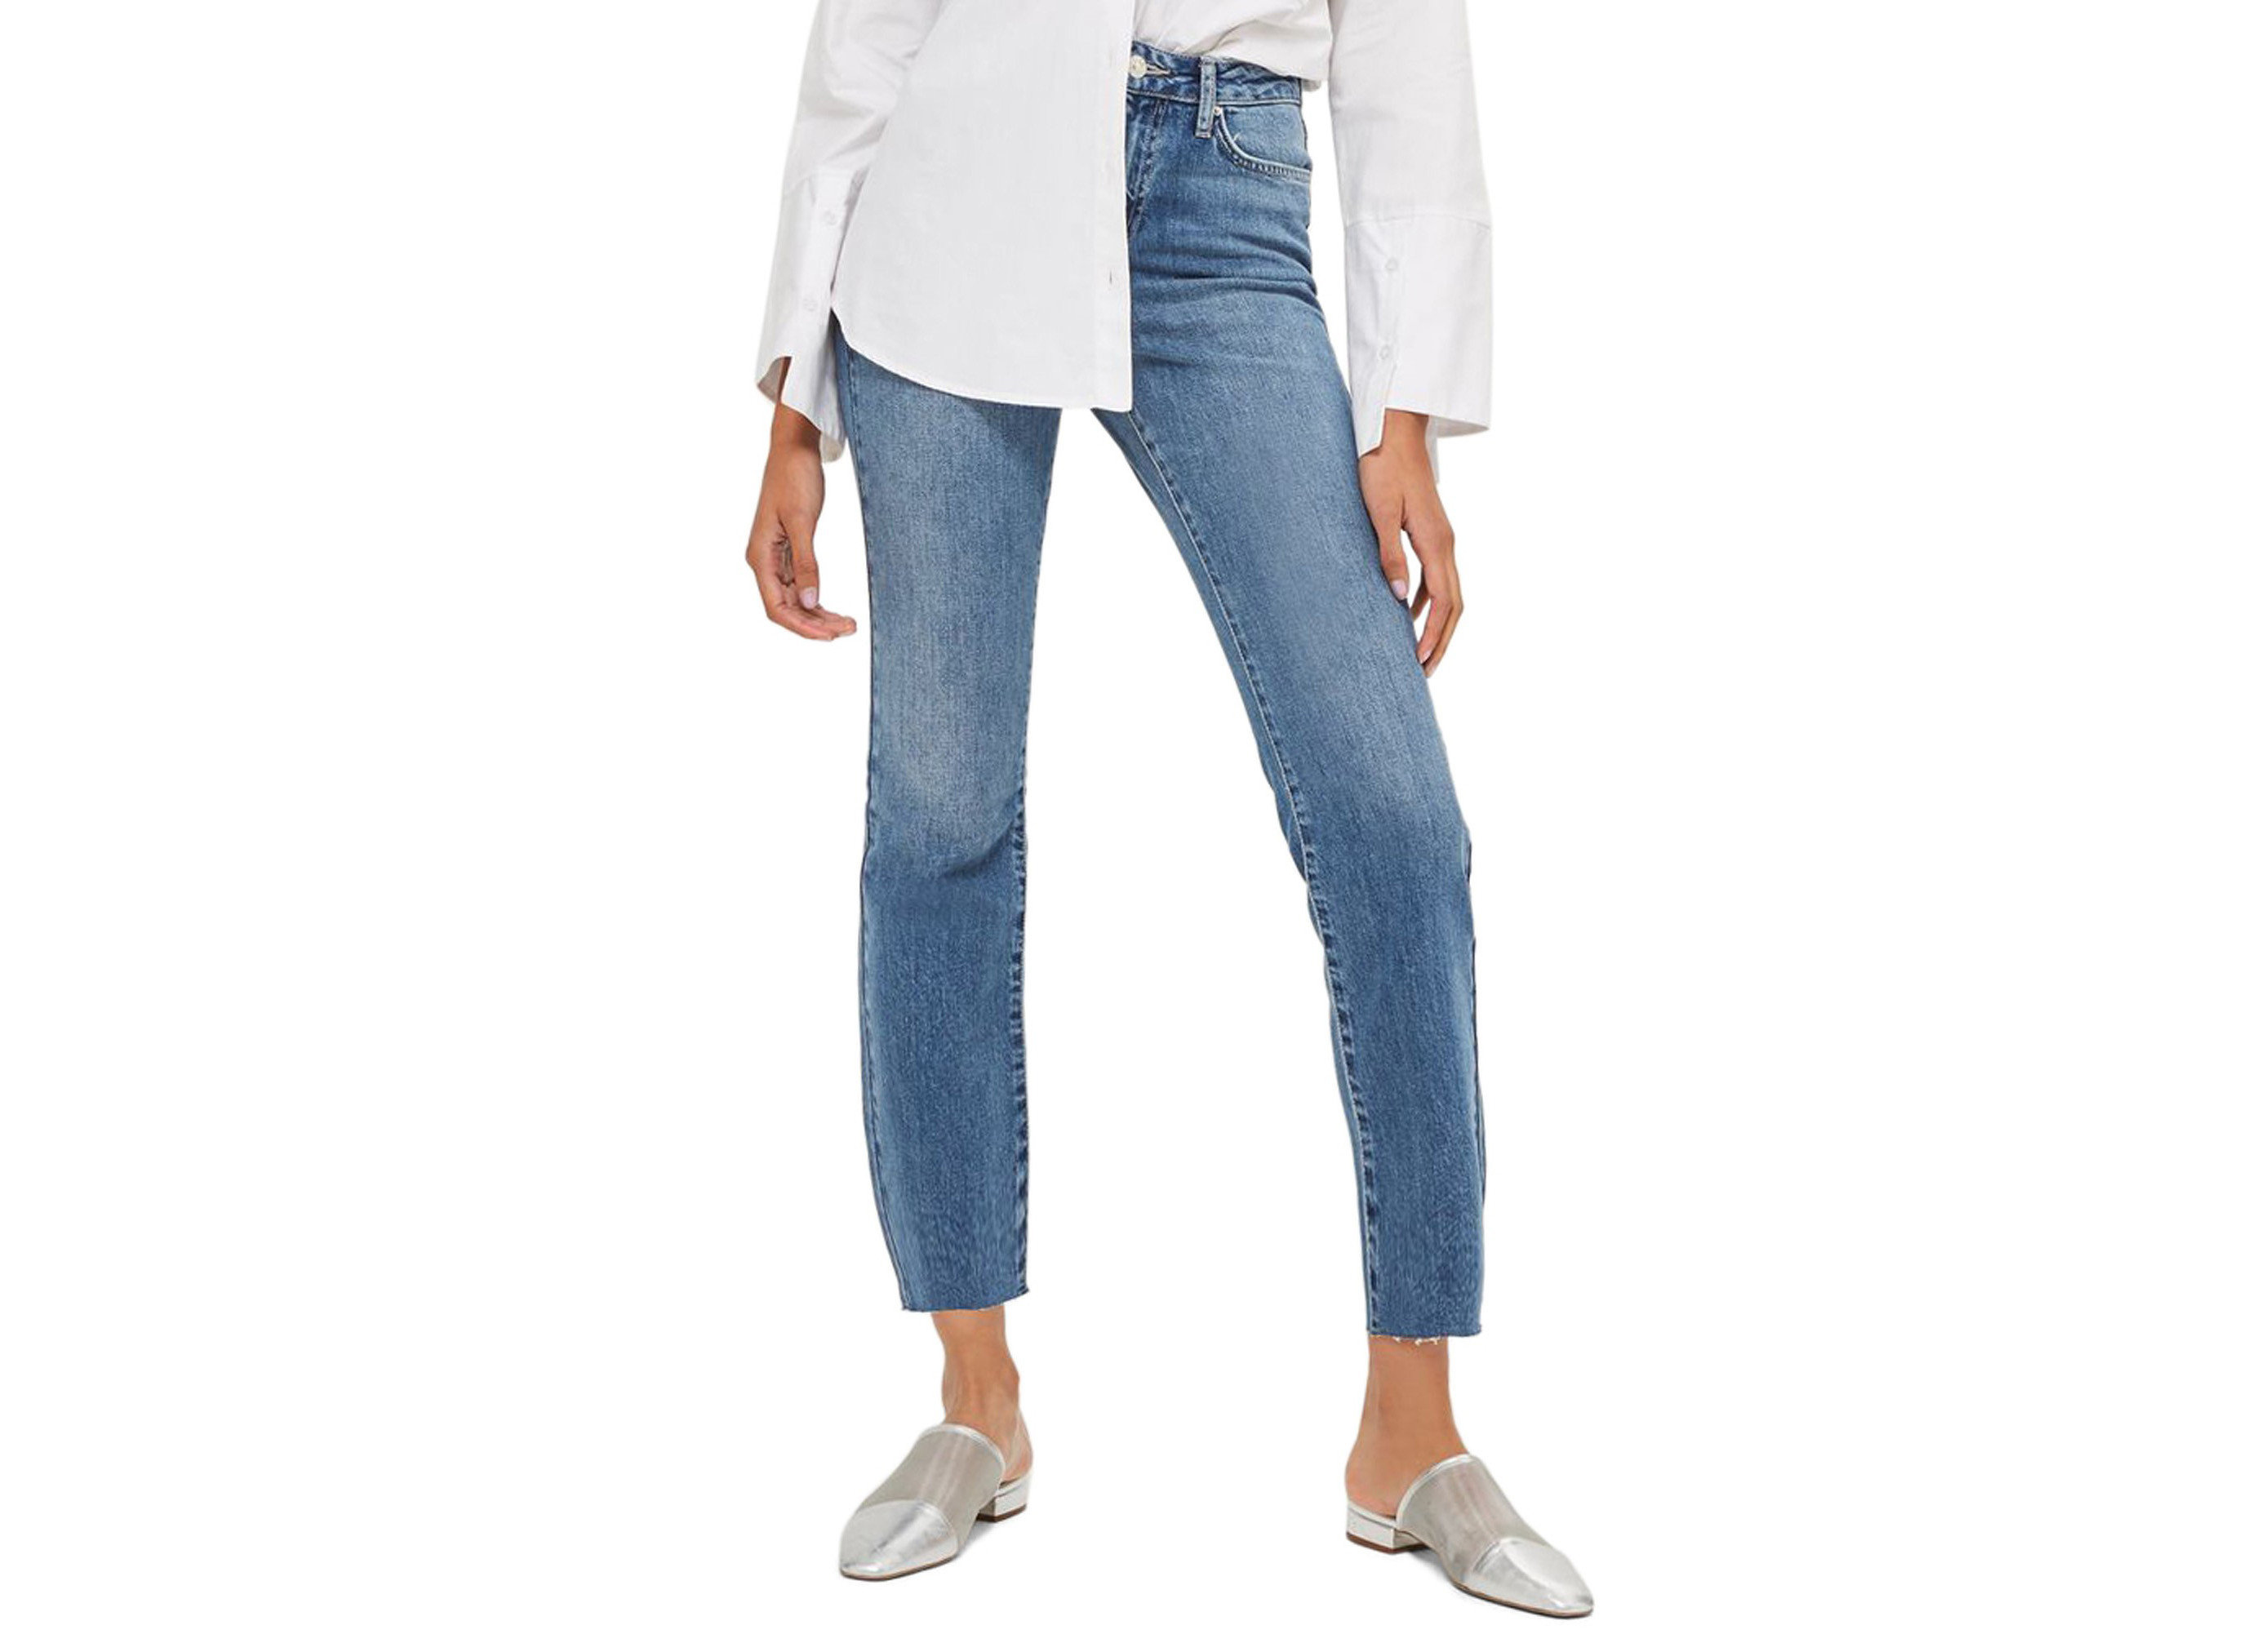 Style + Design clothing person jeans denim waist wearing joint trousers shoe trouser posing pocket electric blue